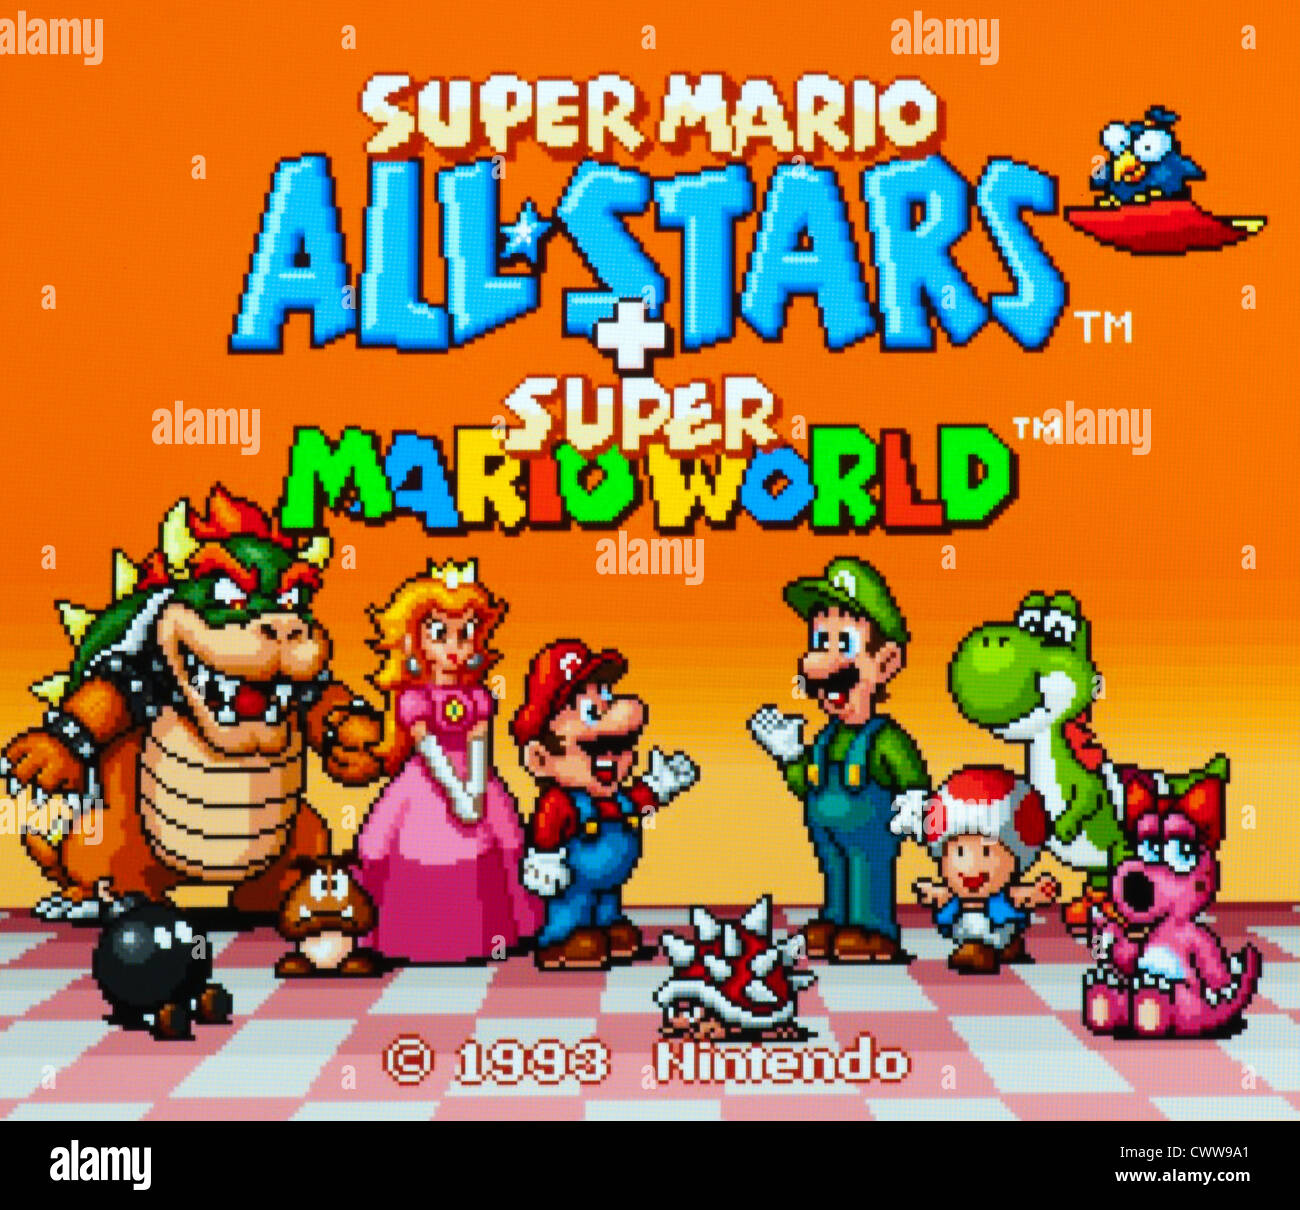 Super Mario All stars video game - title screen Stock Photo, Royalty Free Image: 50343273 - Alamy